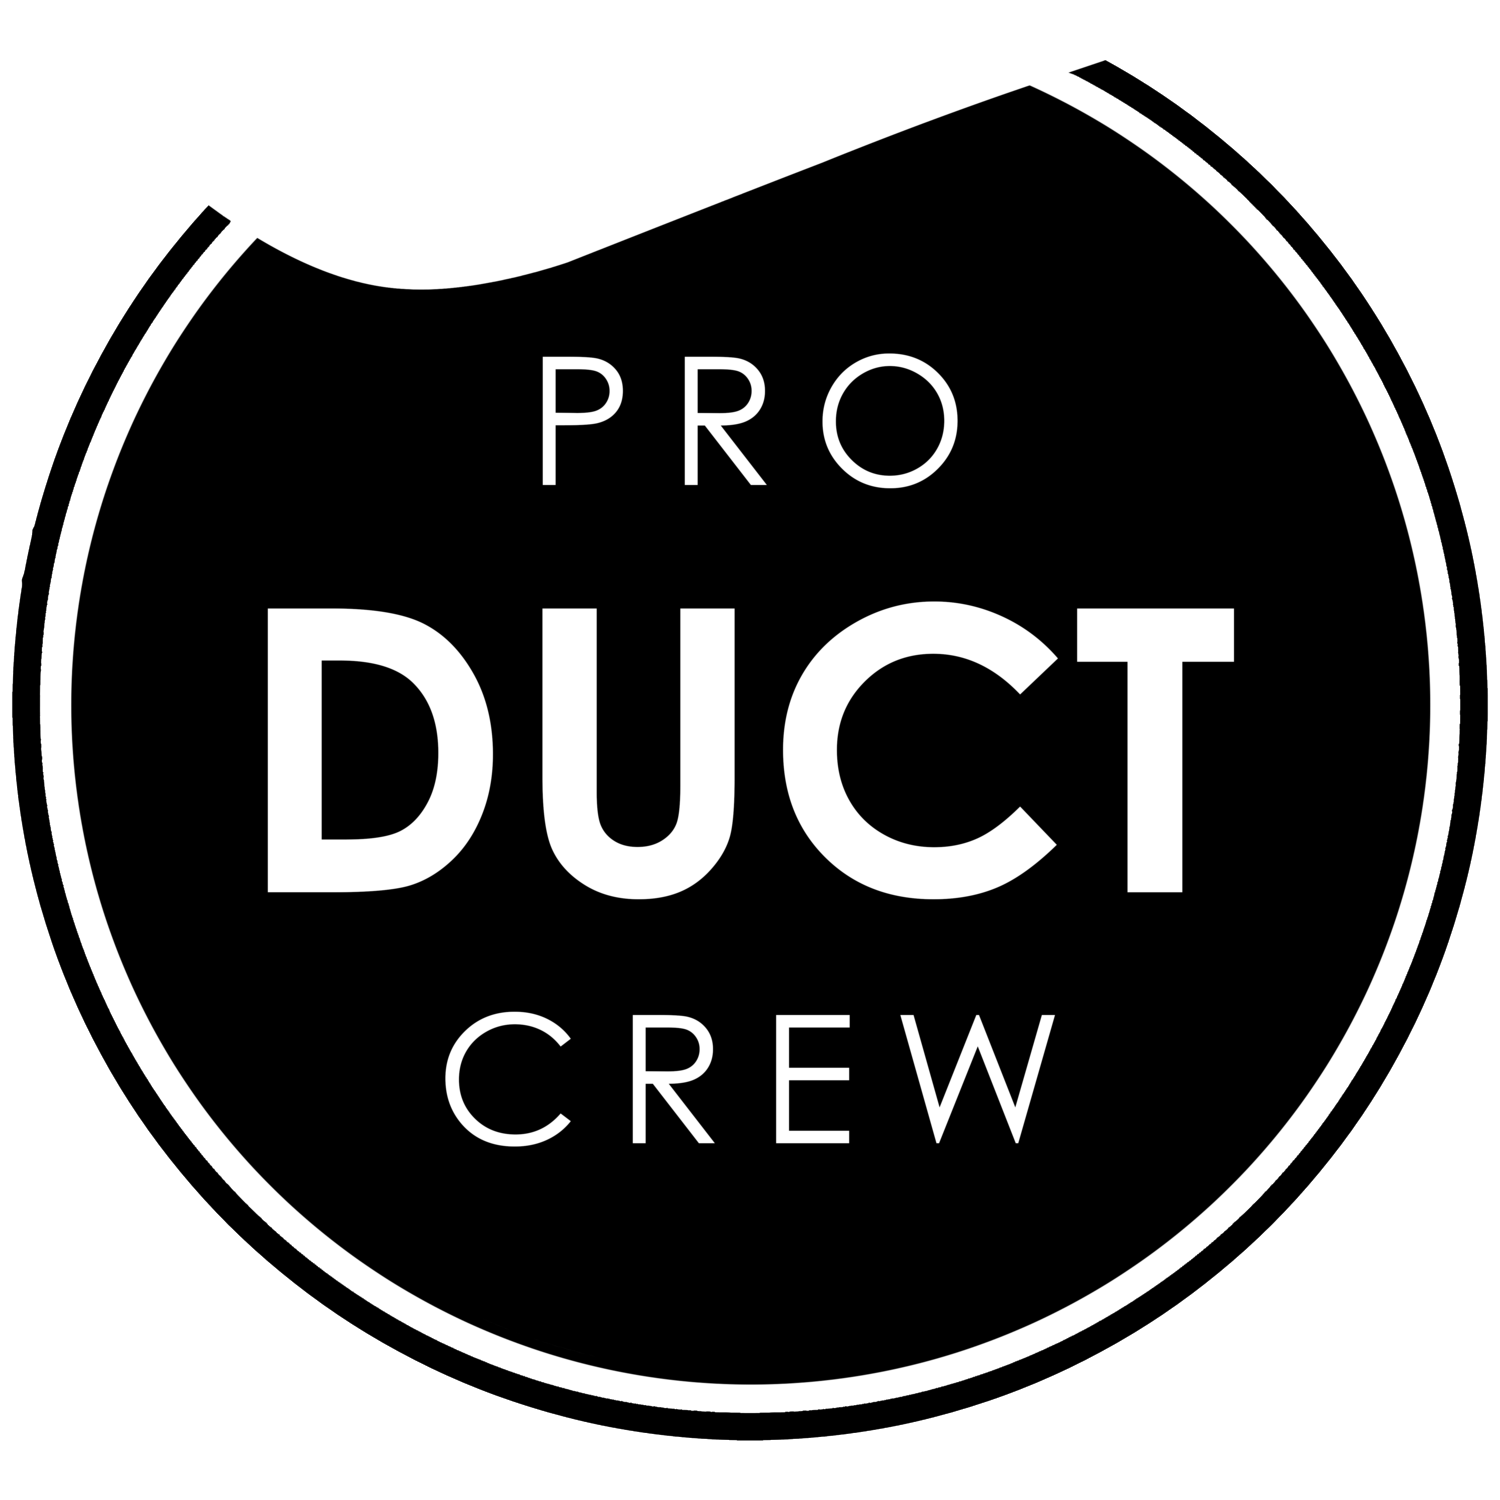 The Pro Duct Crew - Professional Air Duct and Dryer Vent Cleaning